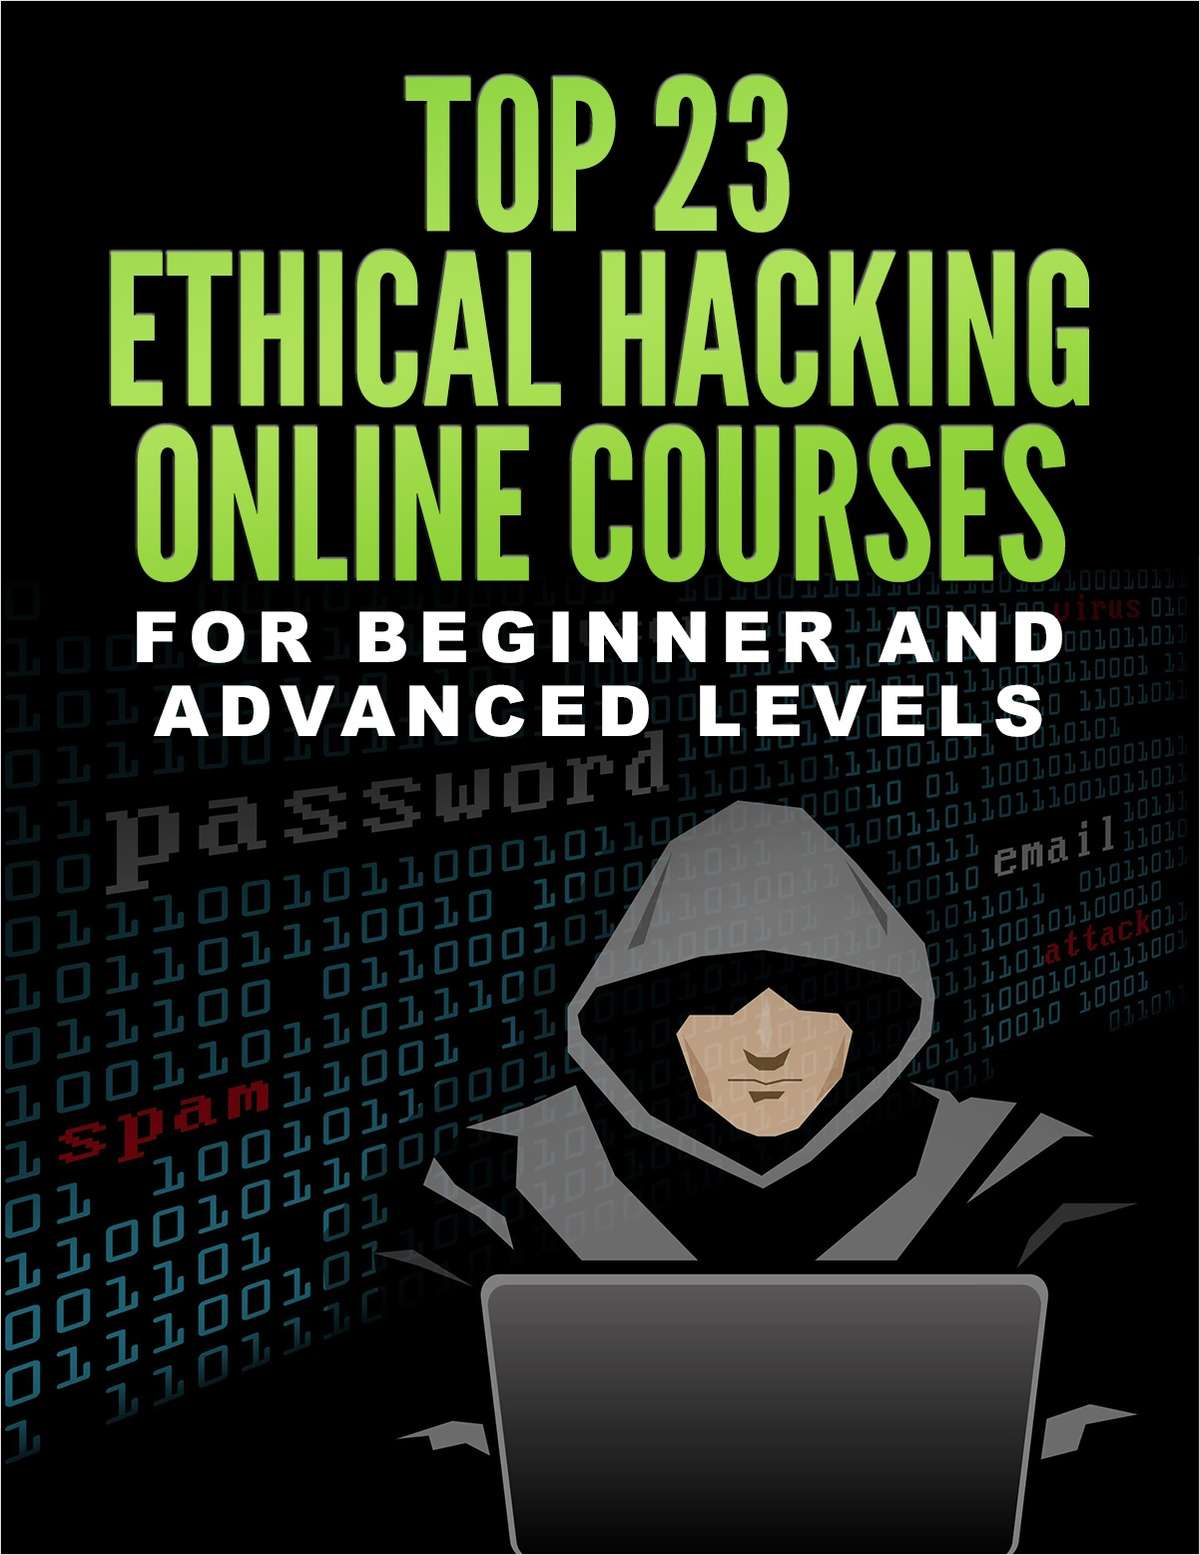 Free online ethical hacking course for beginners